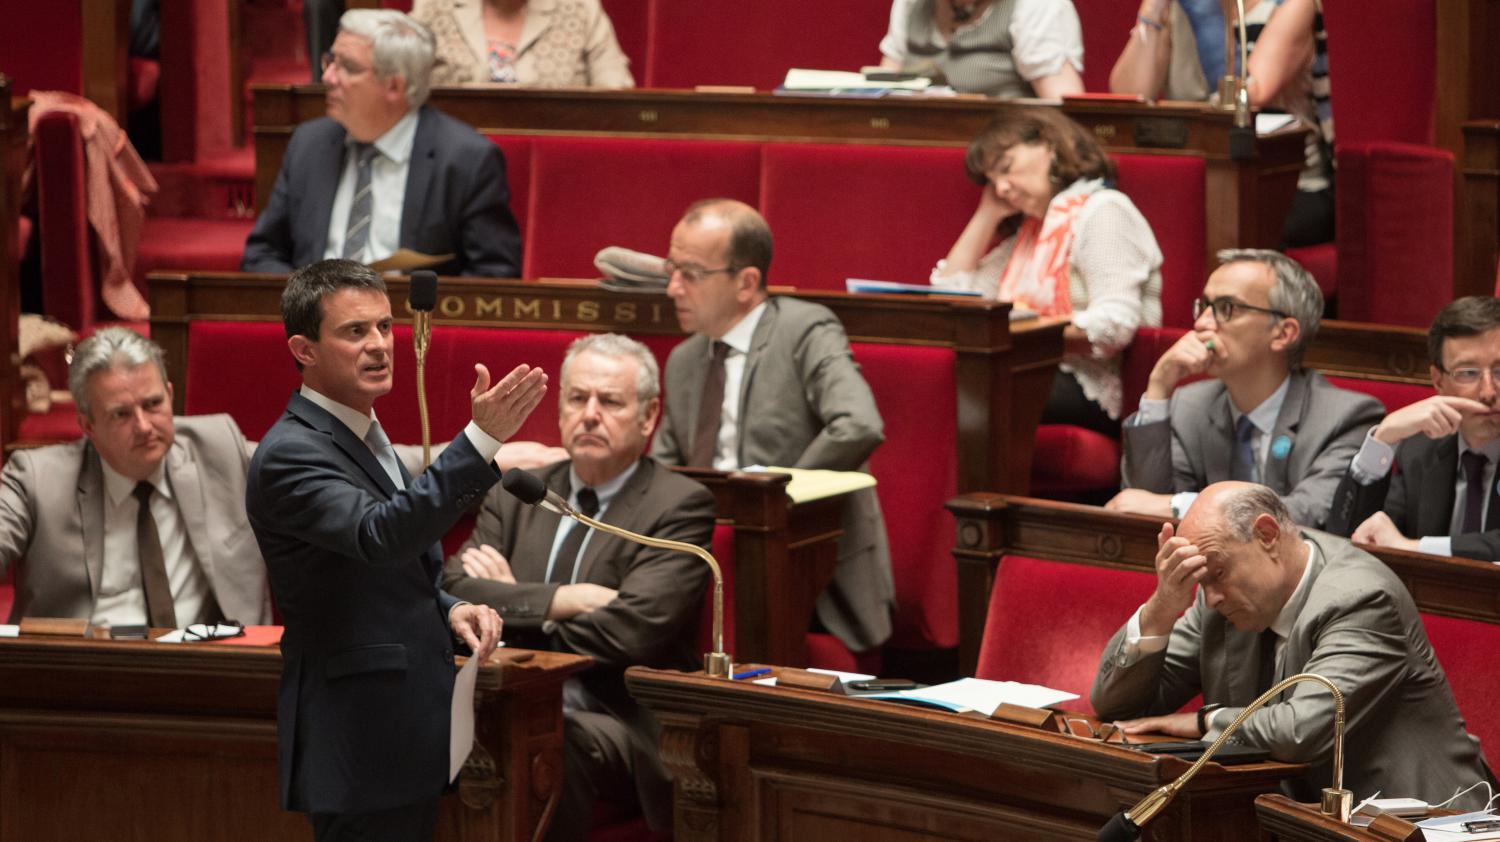 video etat d 39 urgence vive passe d 39 armes entre laurent wauquiez et manuel valls. Black Bedroom Furniture Sets. Home Design Ideas